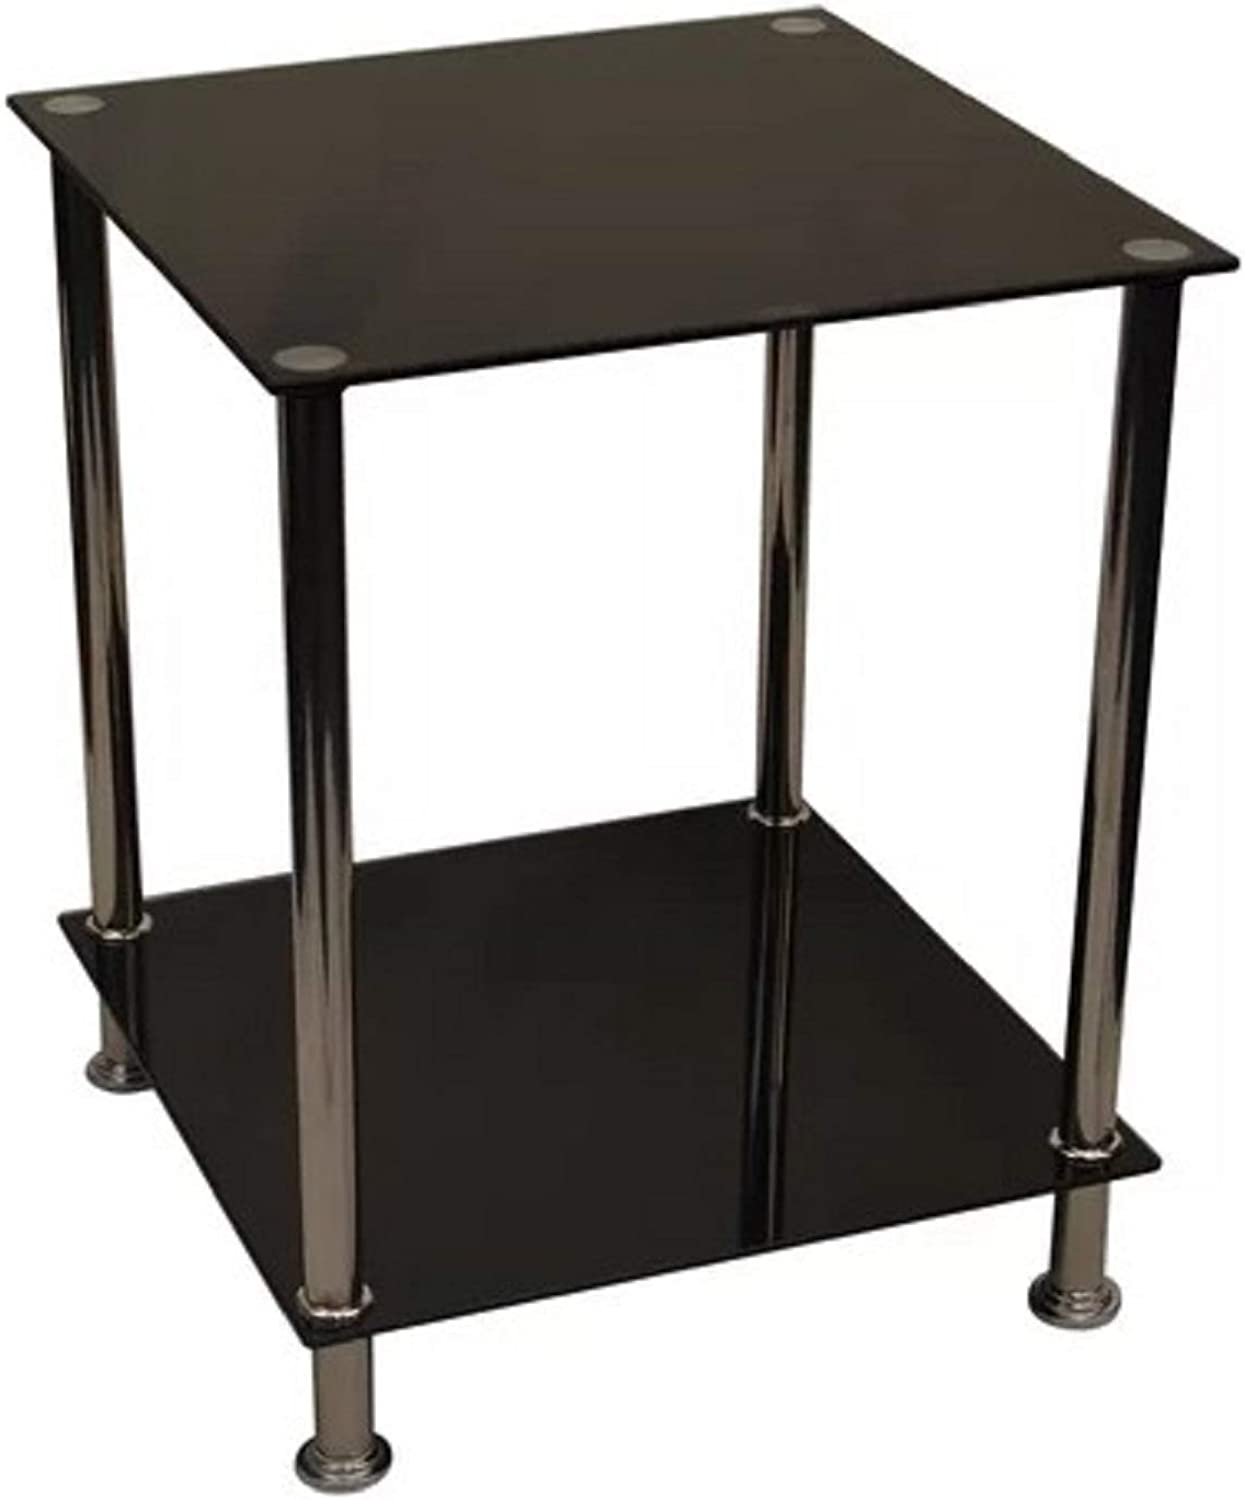 Glass Top End Table. Modern Addition to Any Decor Bavis Glass Top End Table, Measures 19.5'' H x 15.5'' W x 15.5'' D (Black)